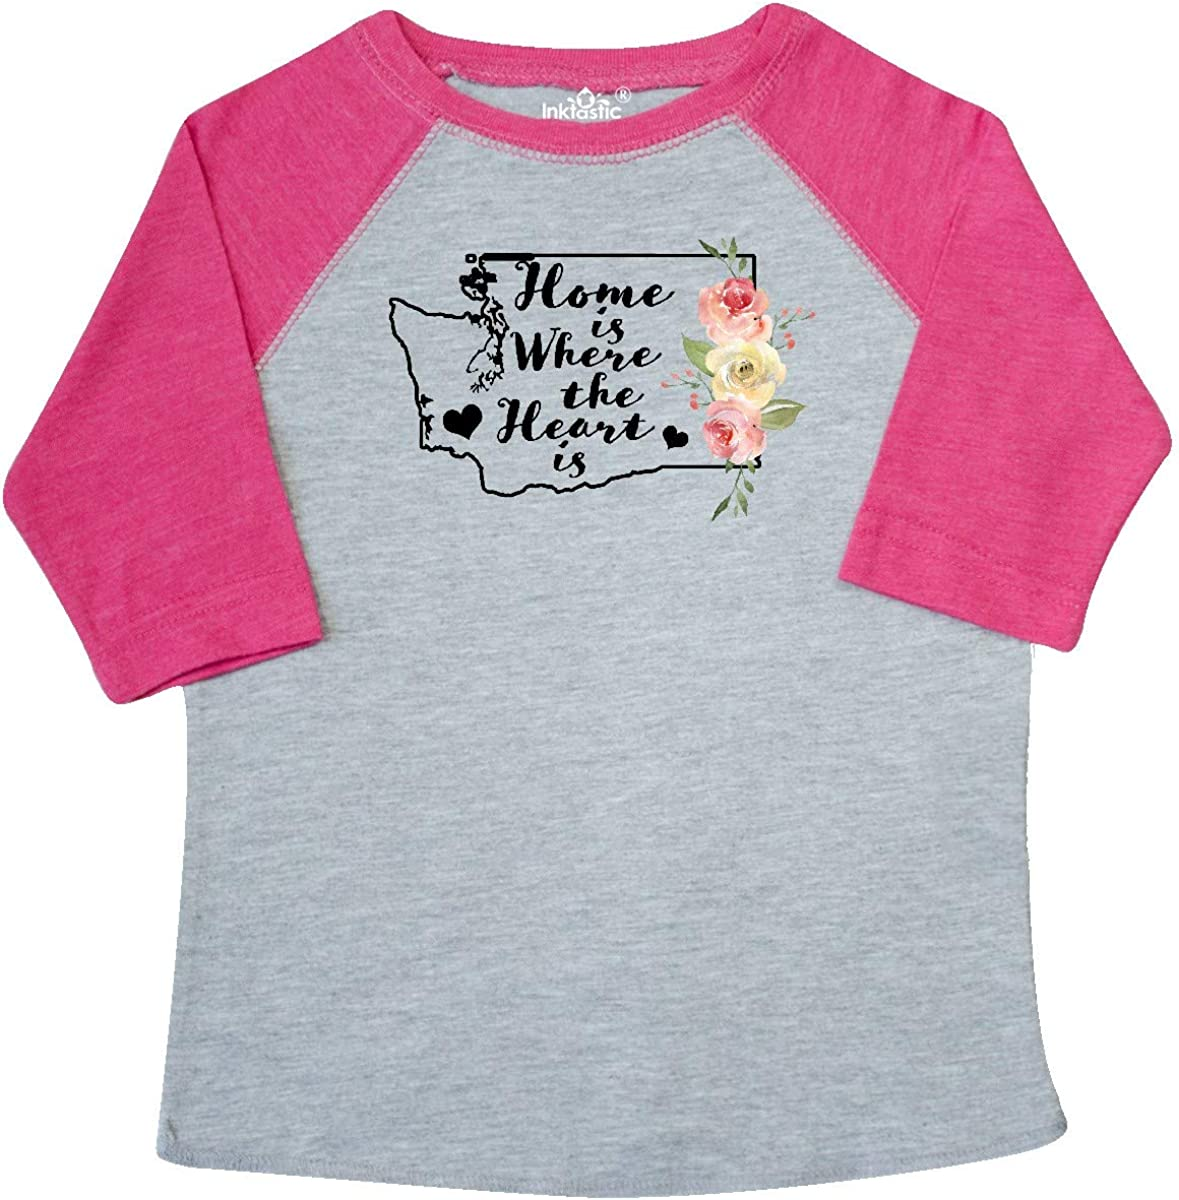 inktastic Washington Home is Where The Heart is with Watercolor Toddler T-Shirt